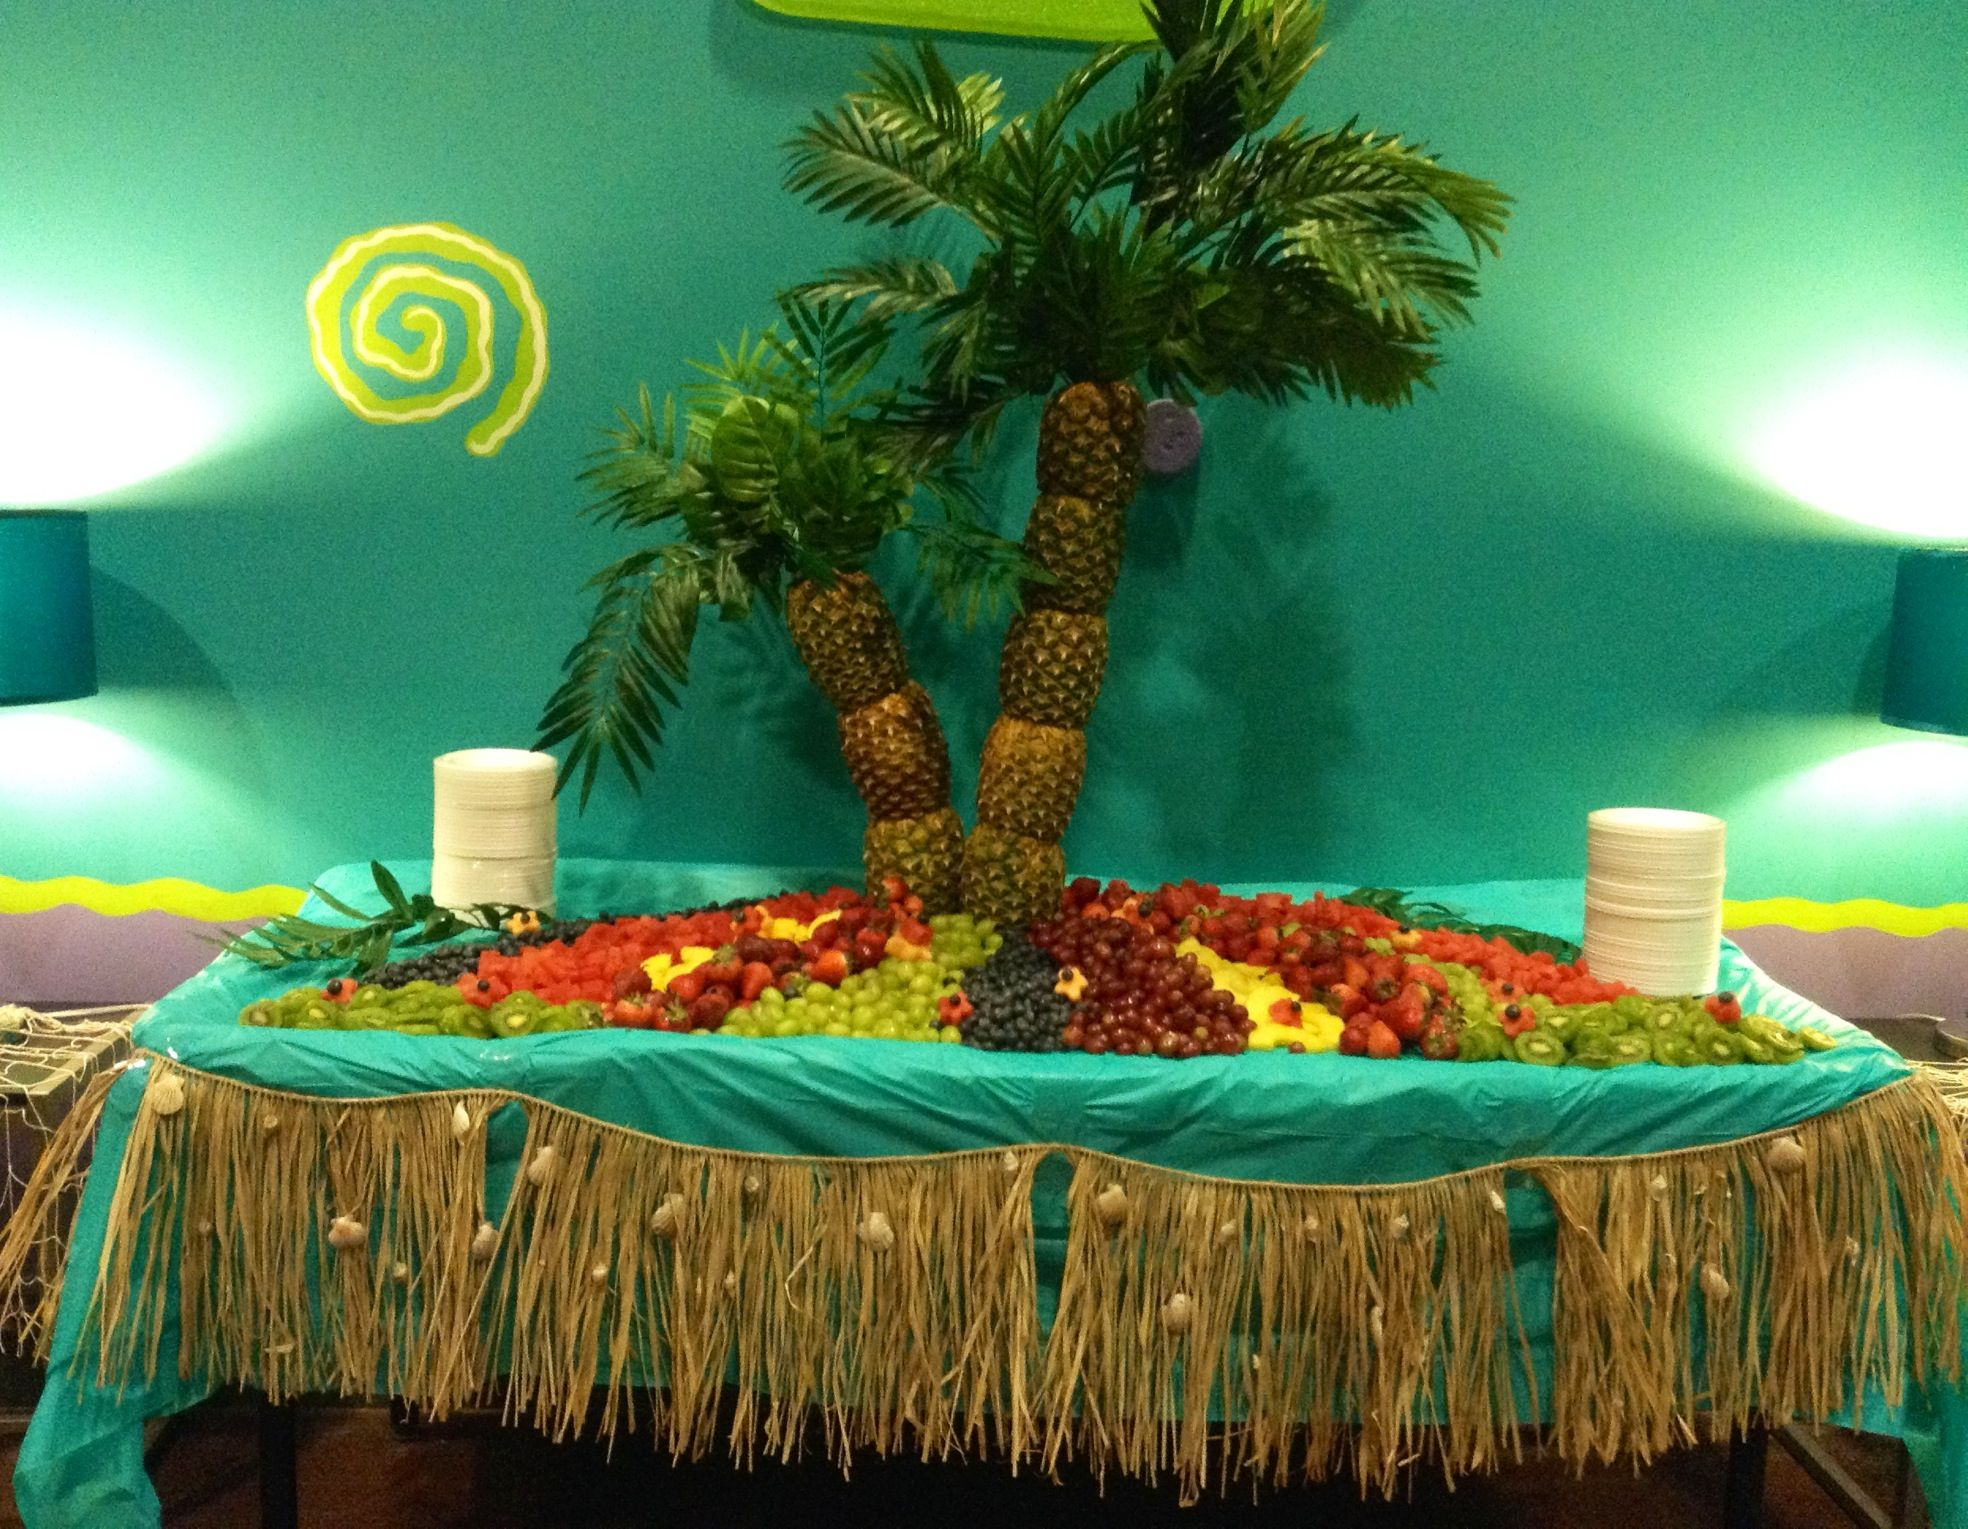 Tropical Fruit Platter For A Beach Wedding: Beach Theme Wedding Fruit Display!